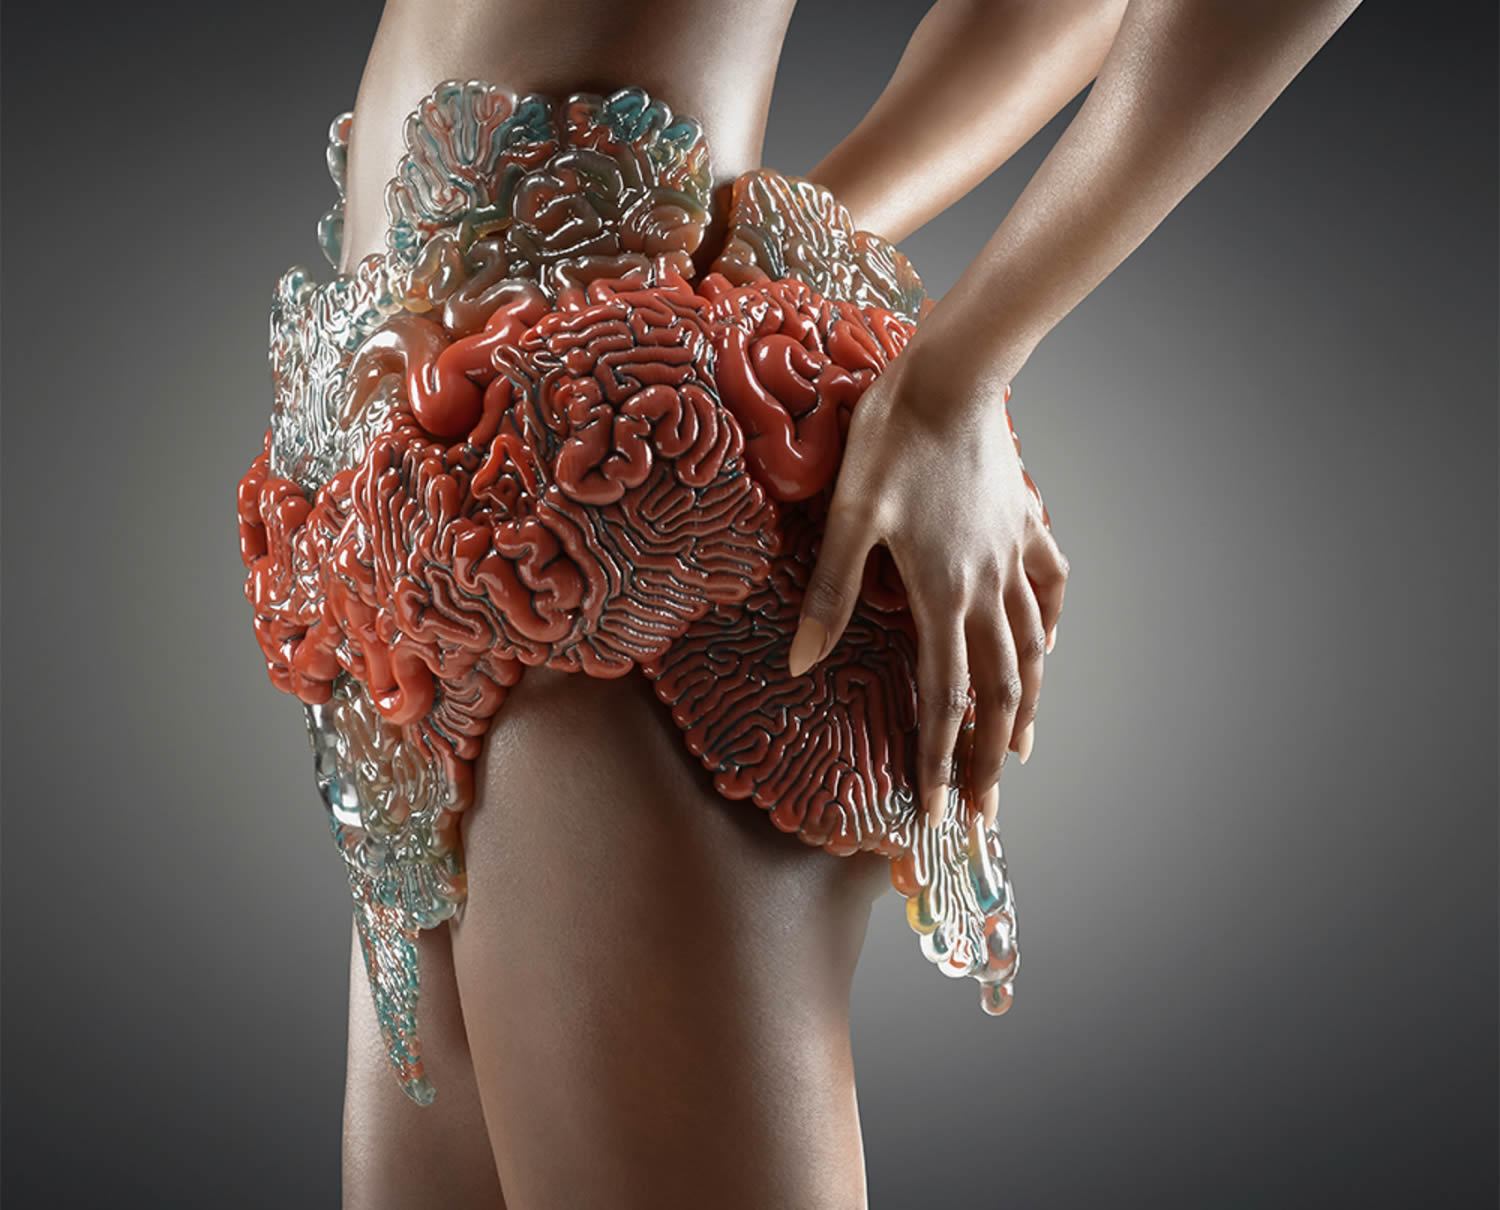 mushtari, by Neri Oxman